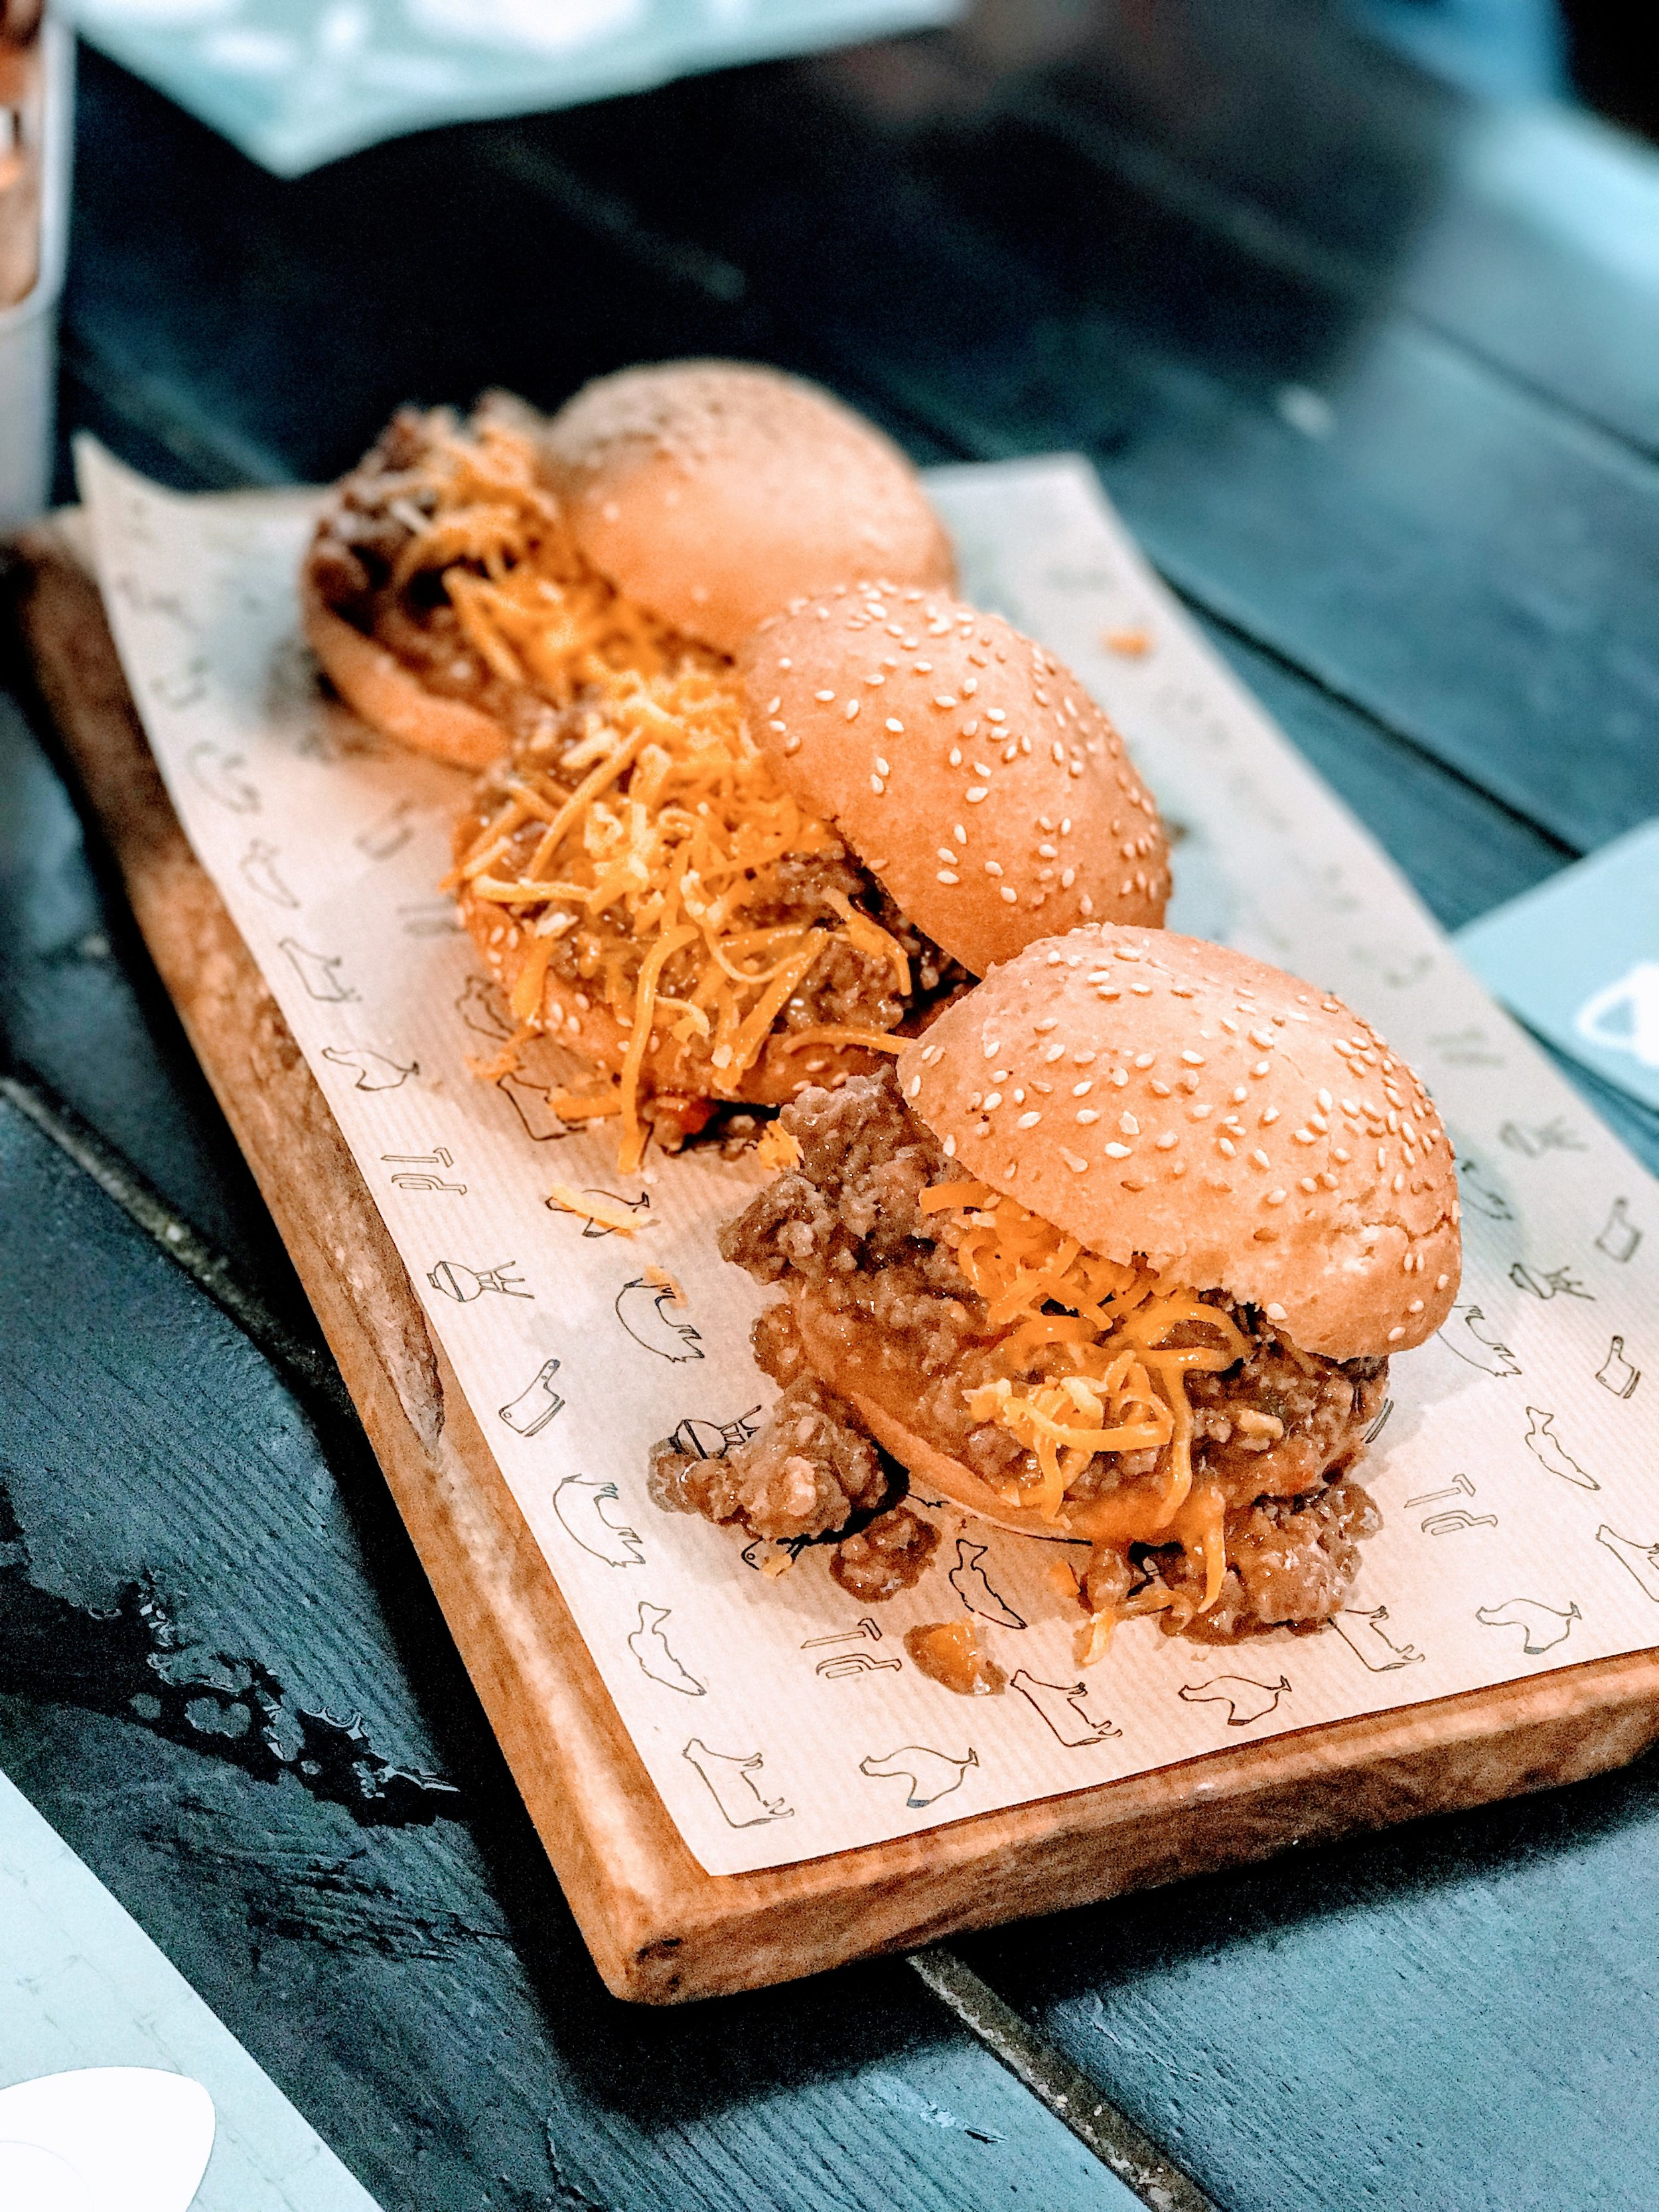 Sliders filled with shredded mature cheddar cheese and minced meat